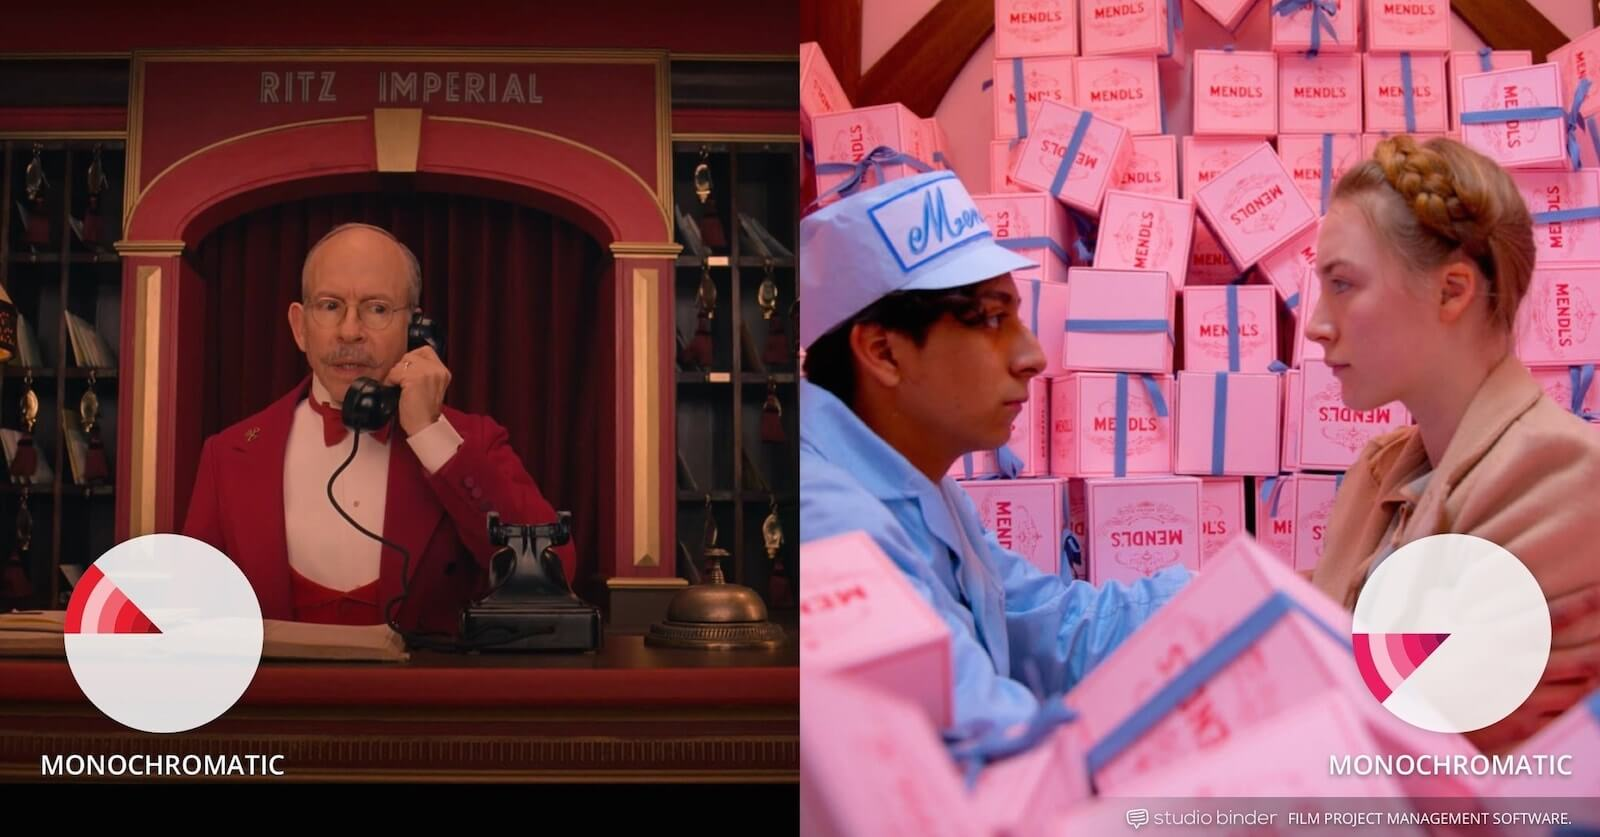 How to Use Color in Film - Example of Movie Color Palette and Schemes - Monochromatic - Grand Budapest Hotel2-min